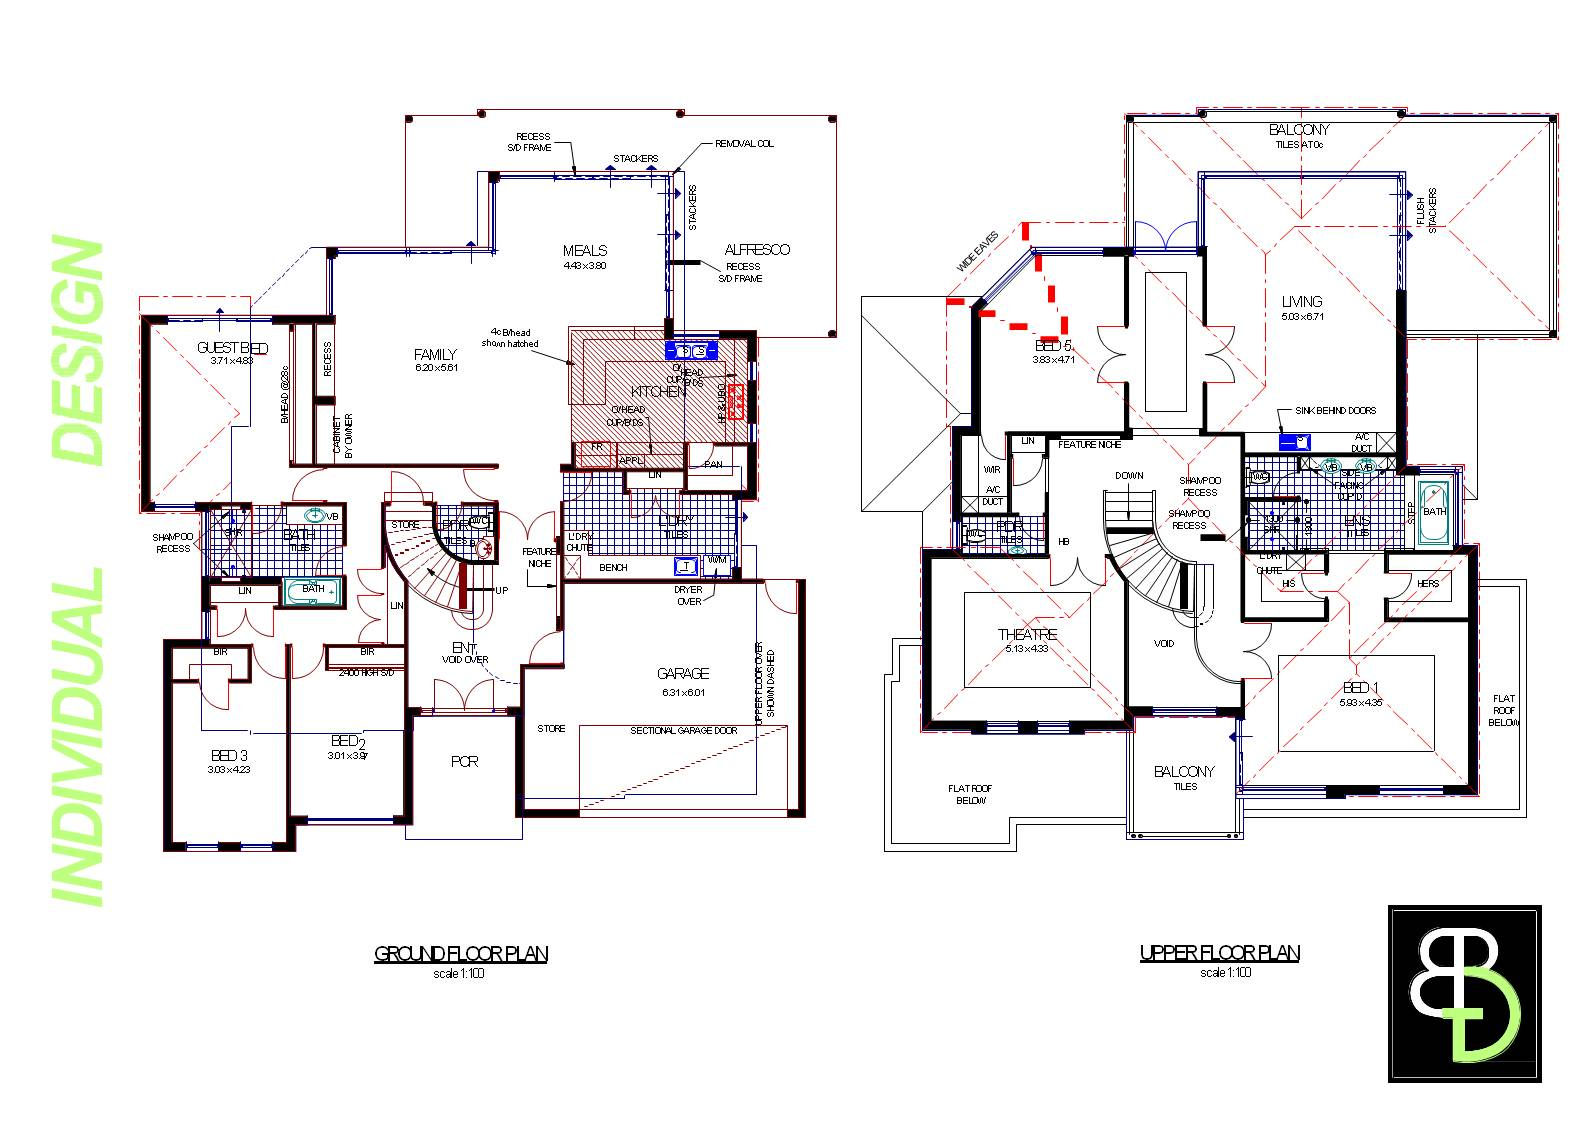 2 story home designs 19441 hd wallpapers background for Two story house blueprints